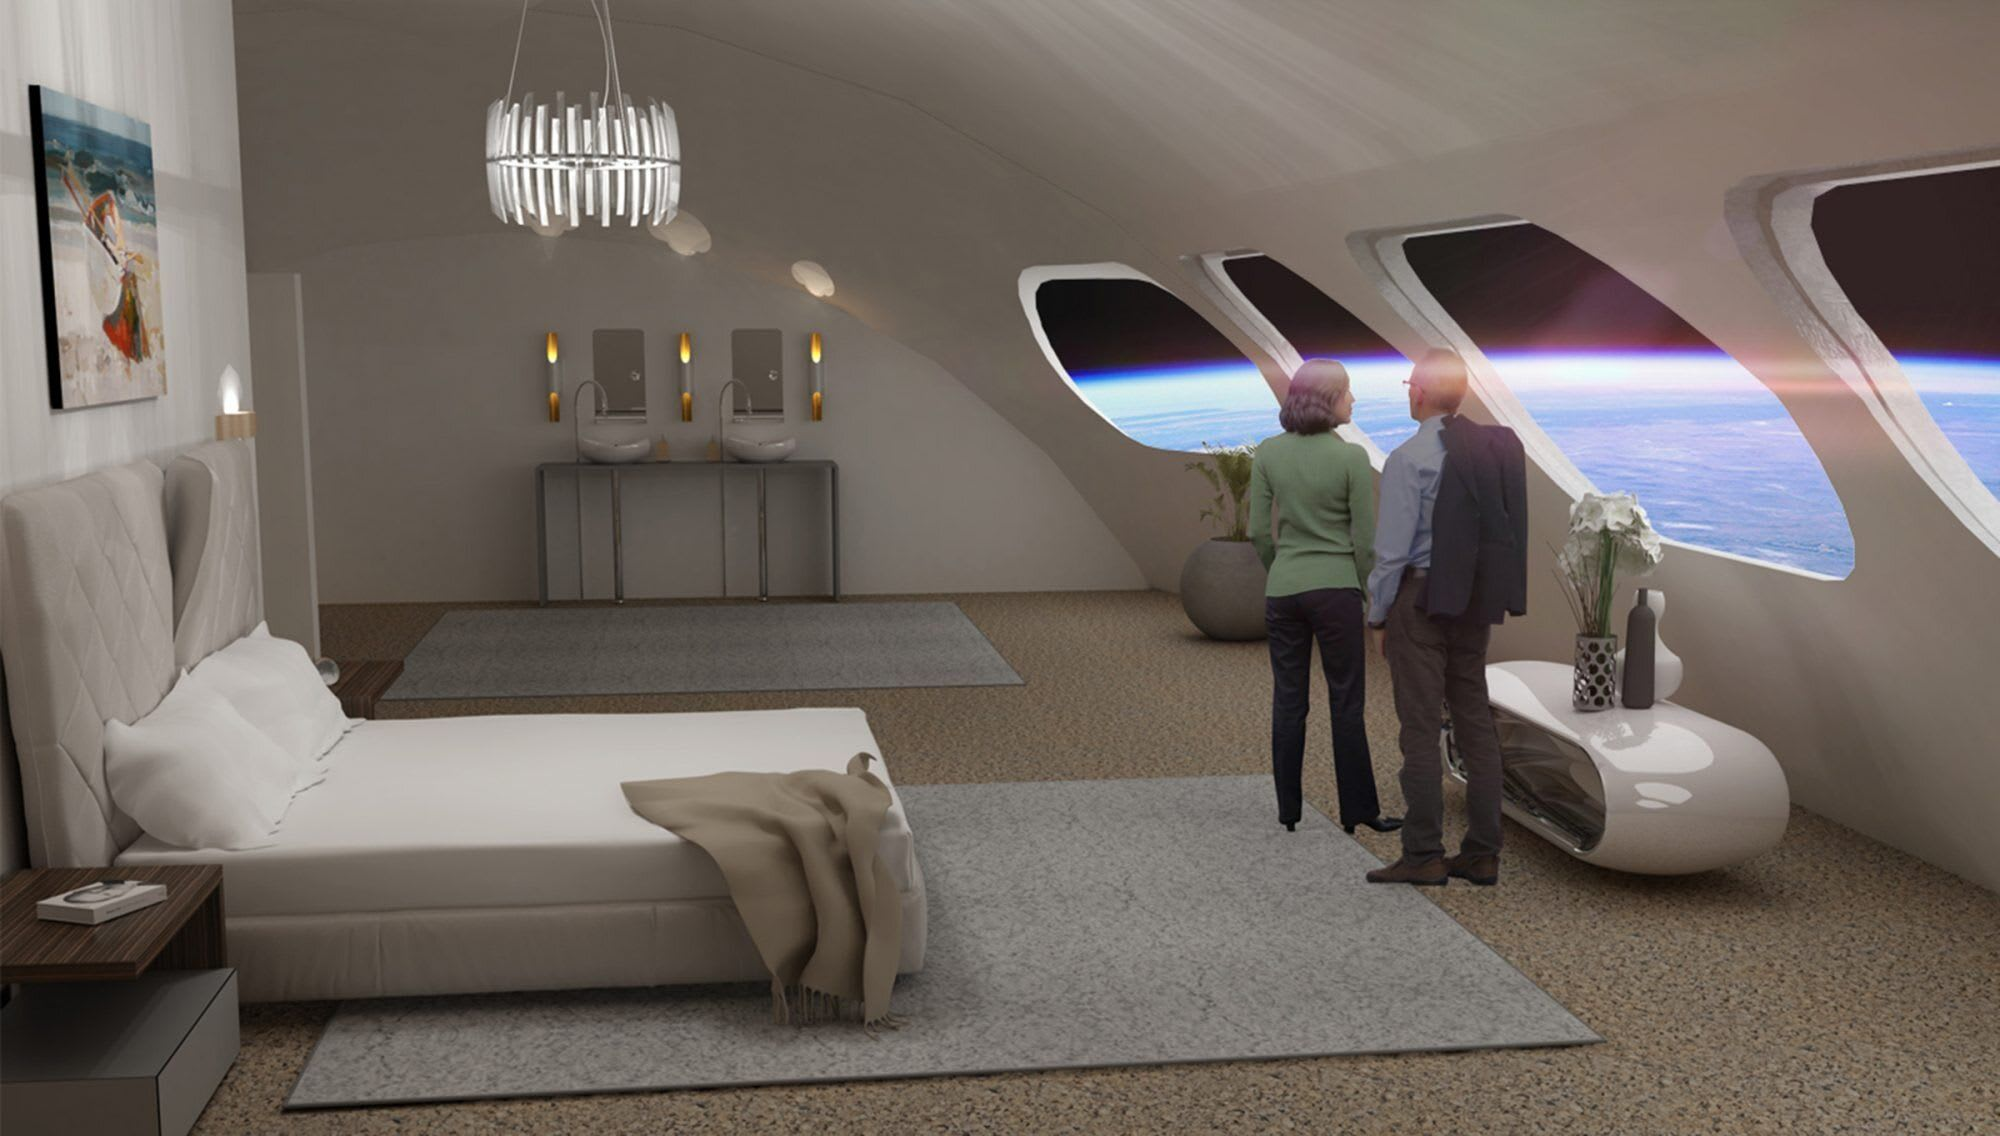 Construction on the First-Ever Space Hotel Will Begin in 2025